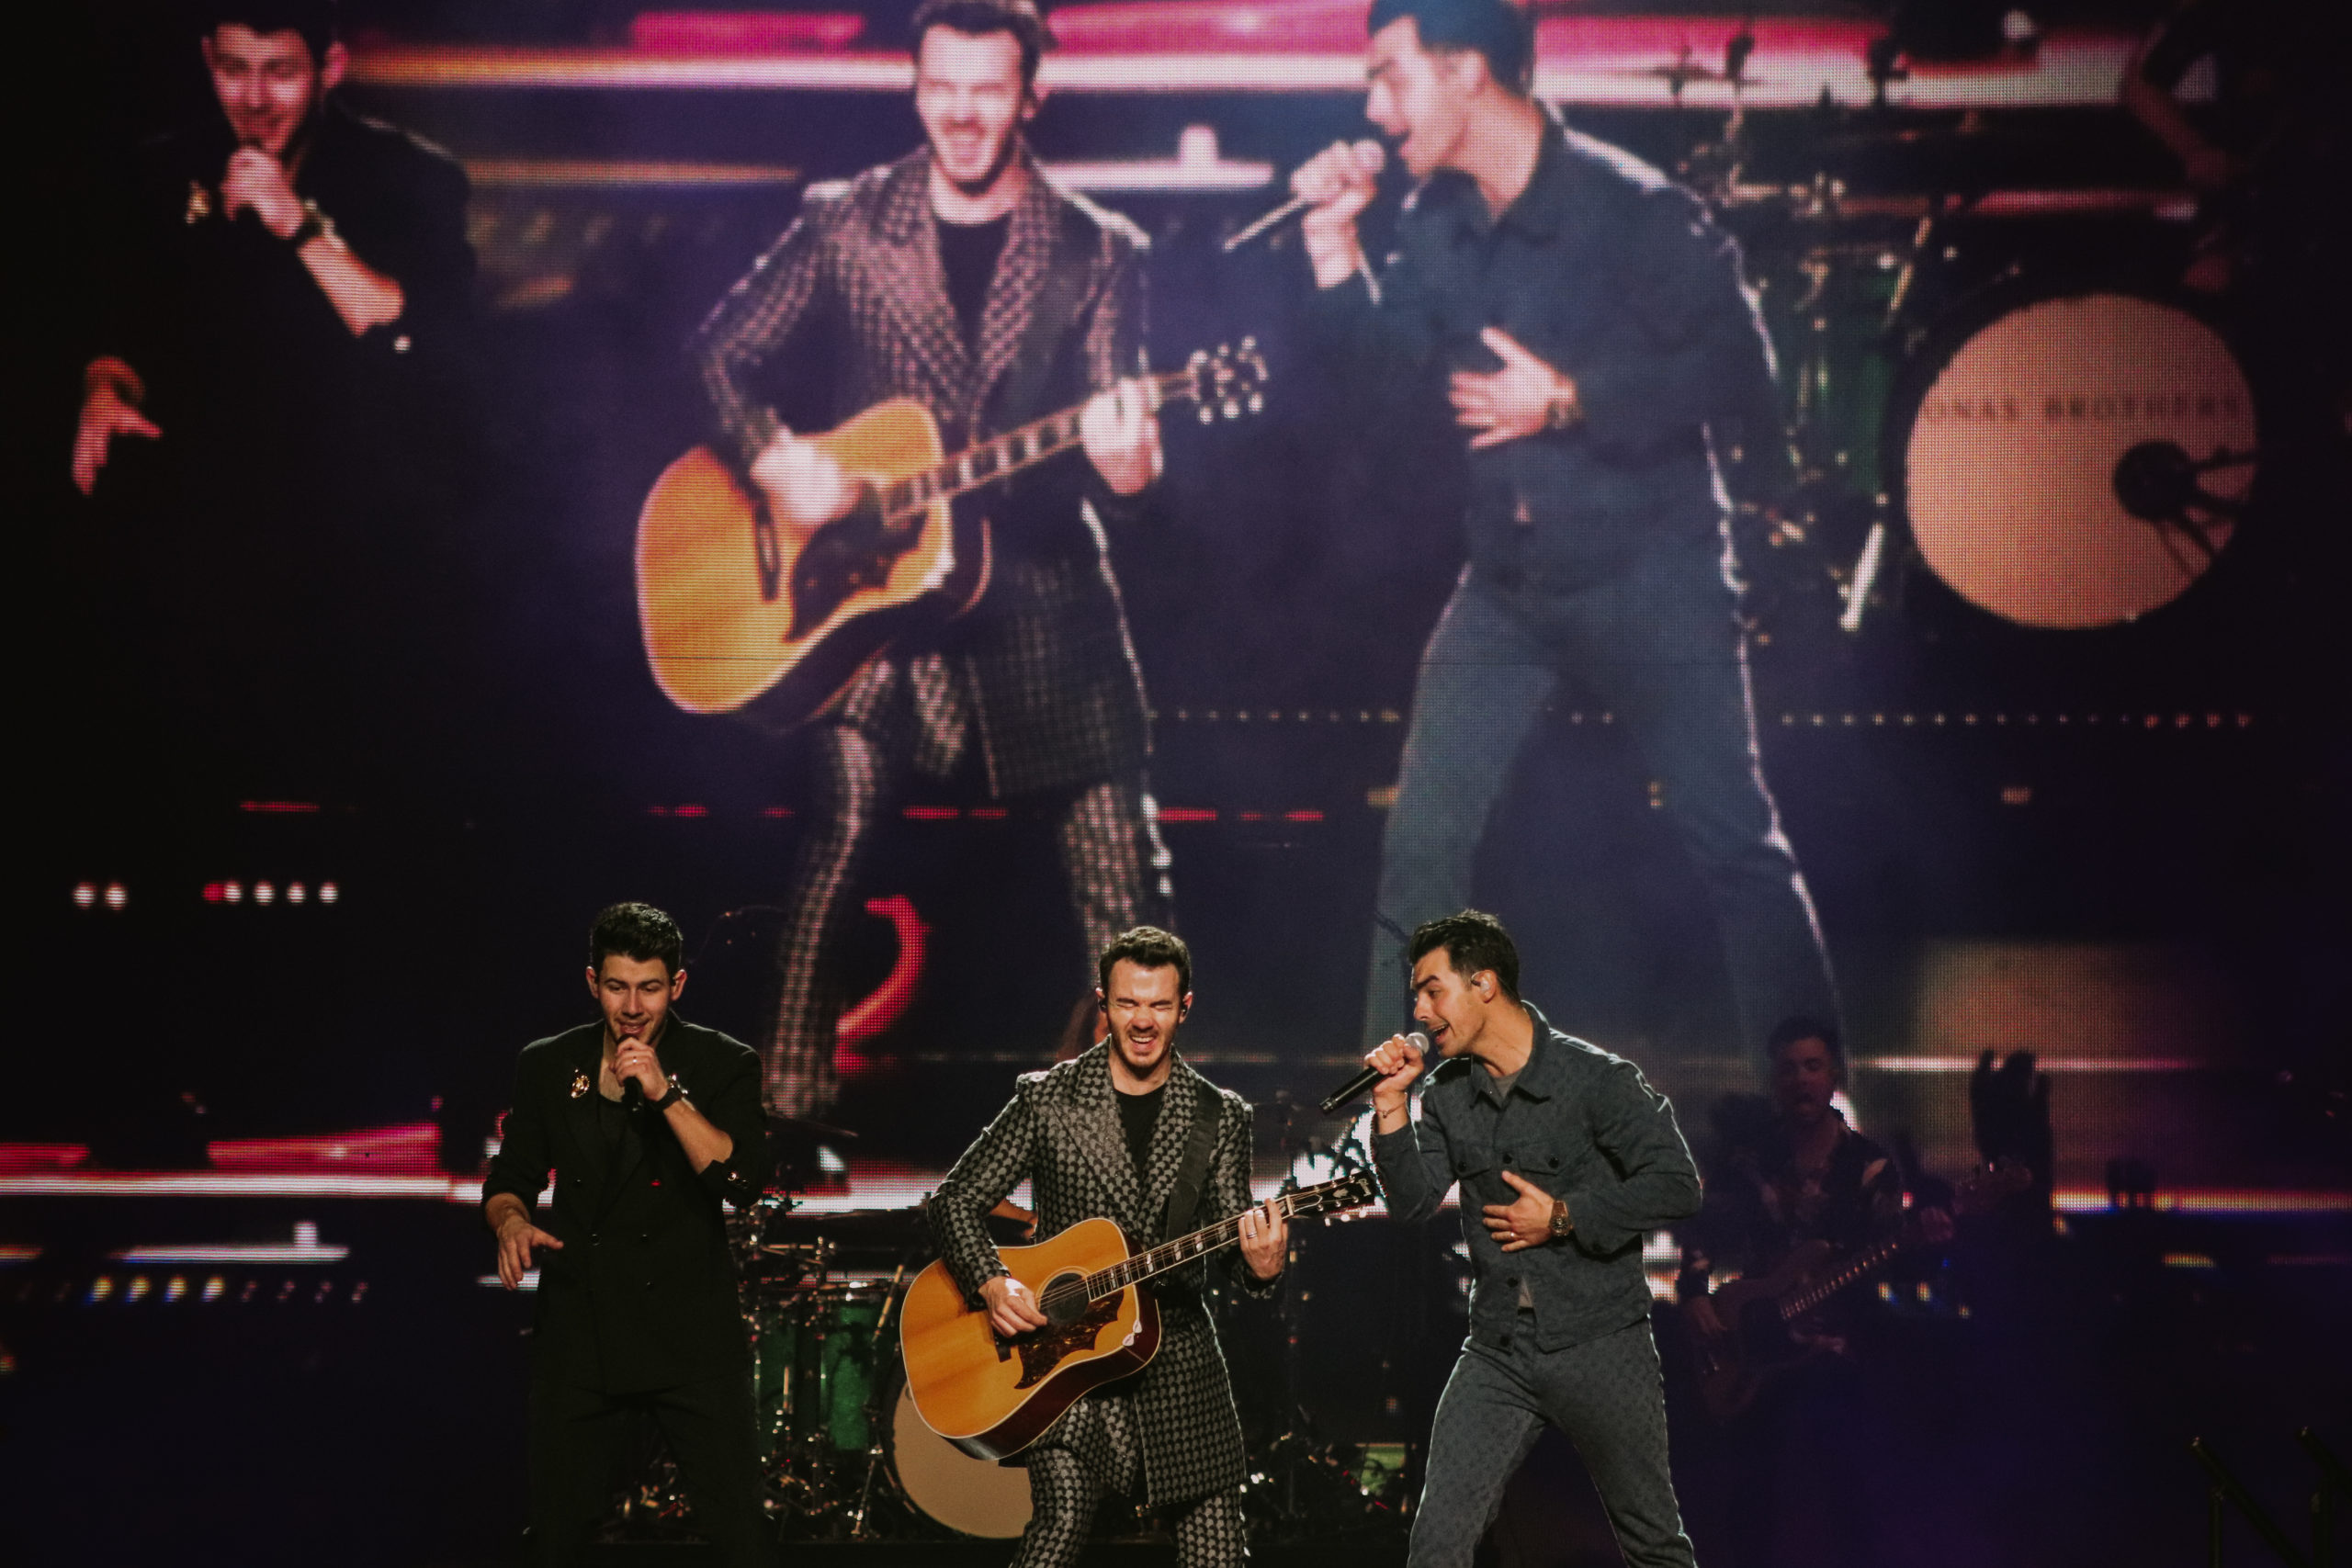 The Jonas Brothers performing on stage